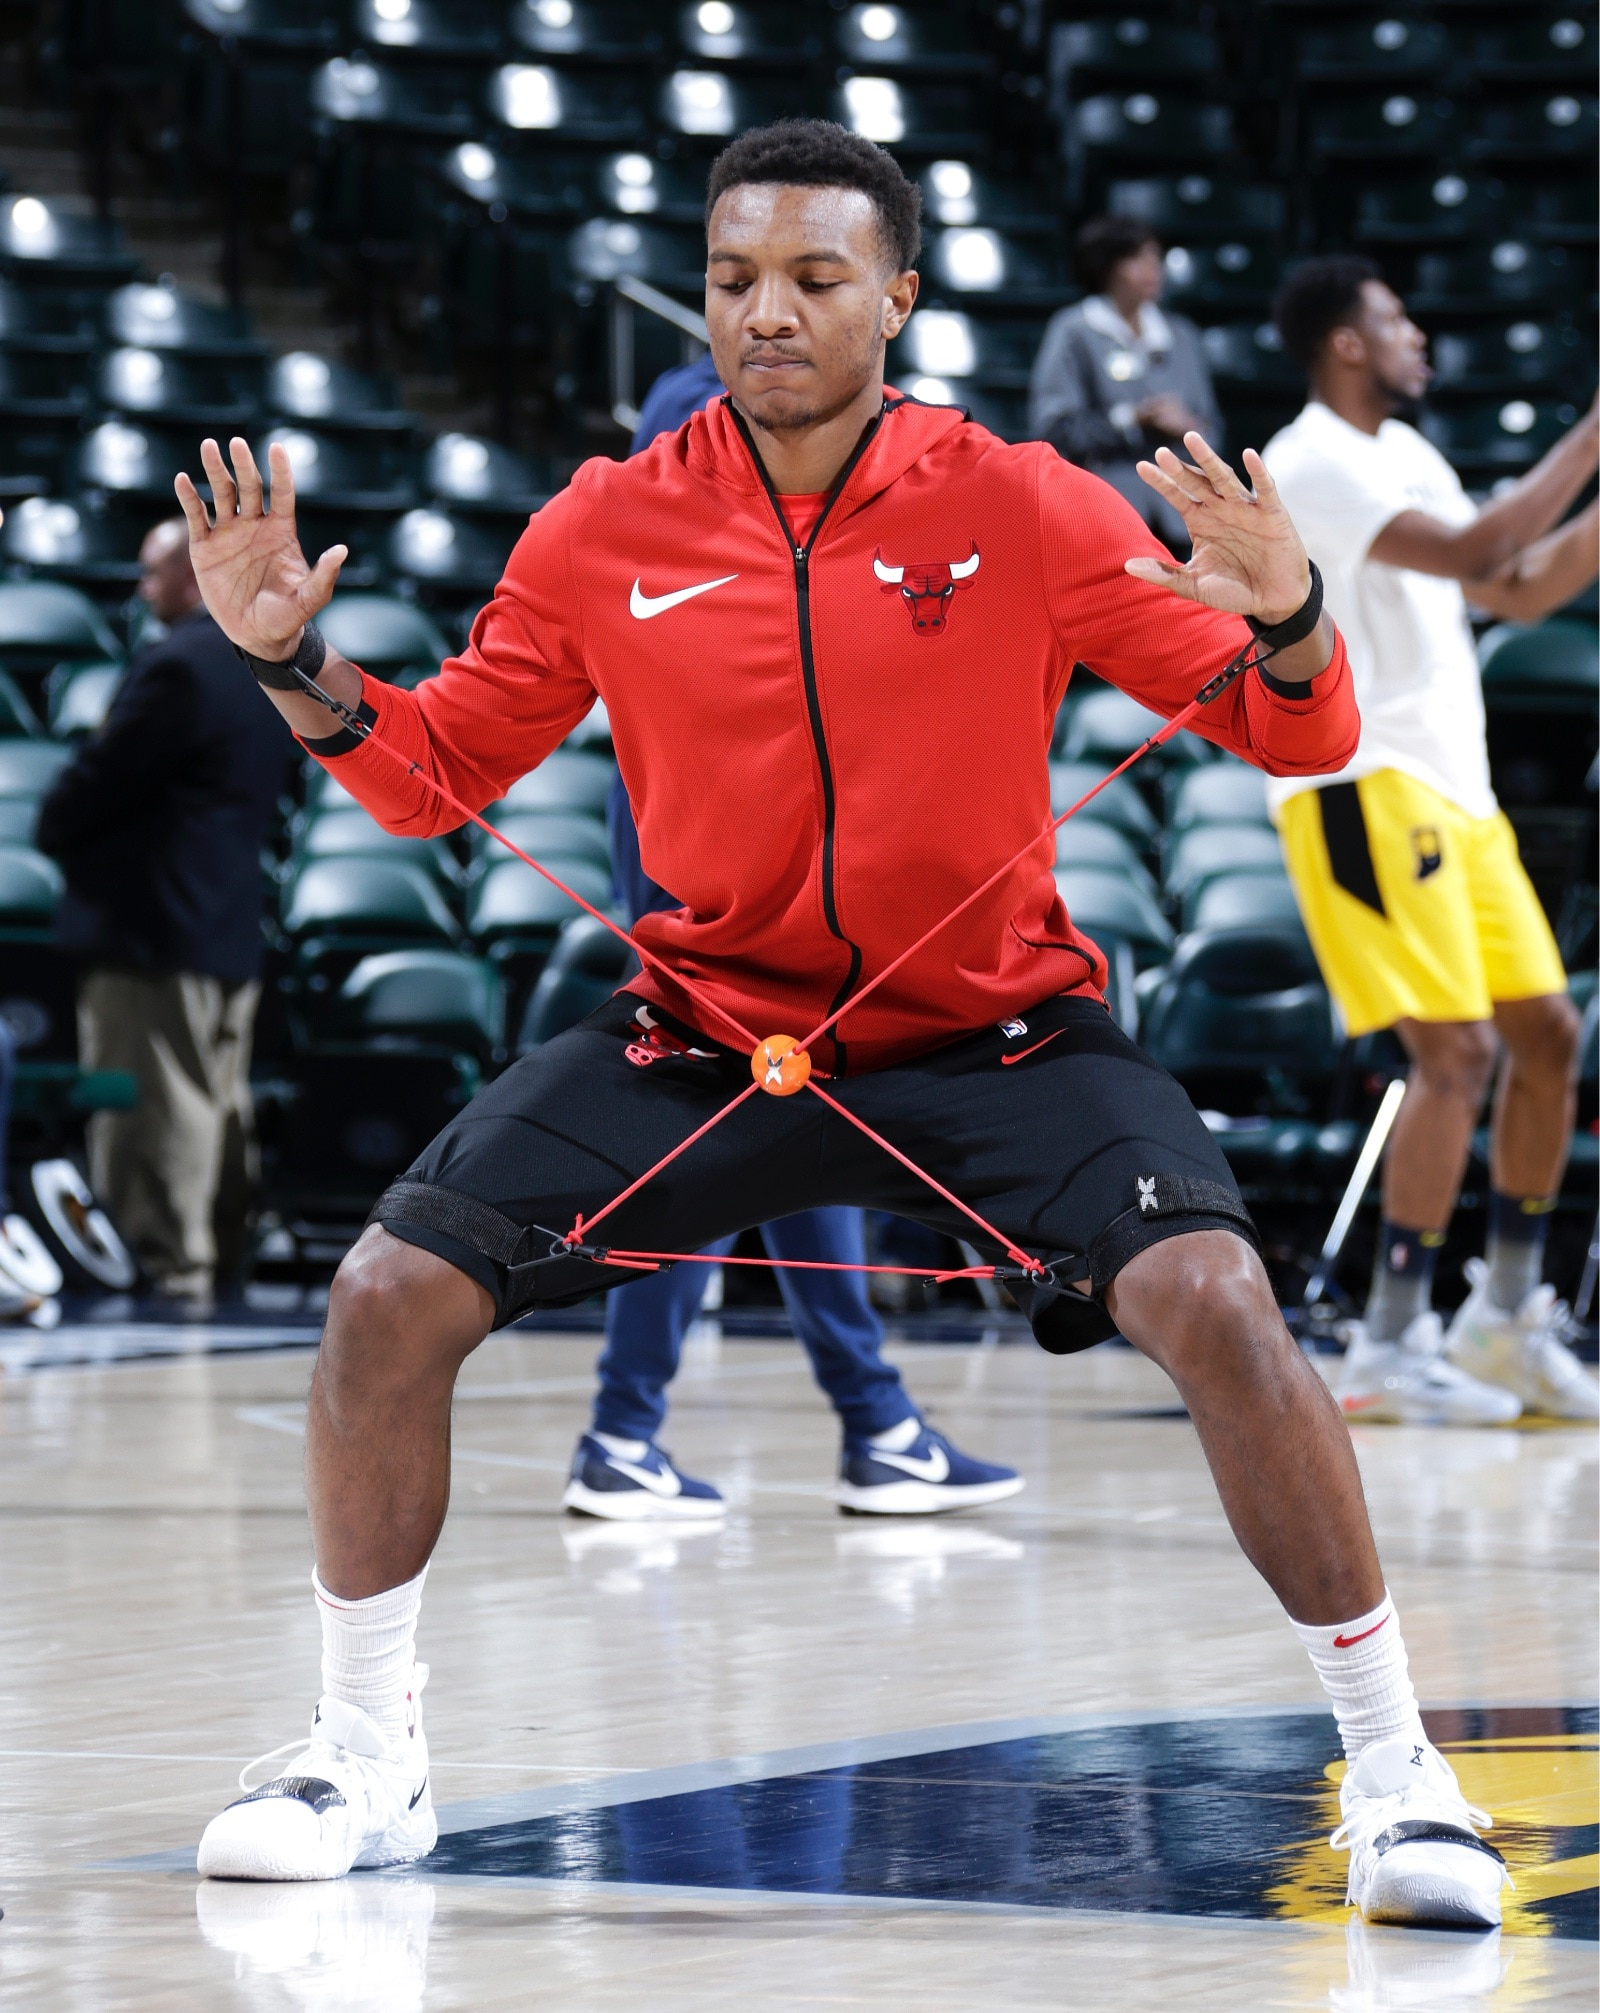 Wendell Carter Jr. works out before the game